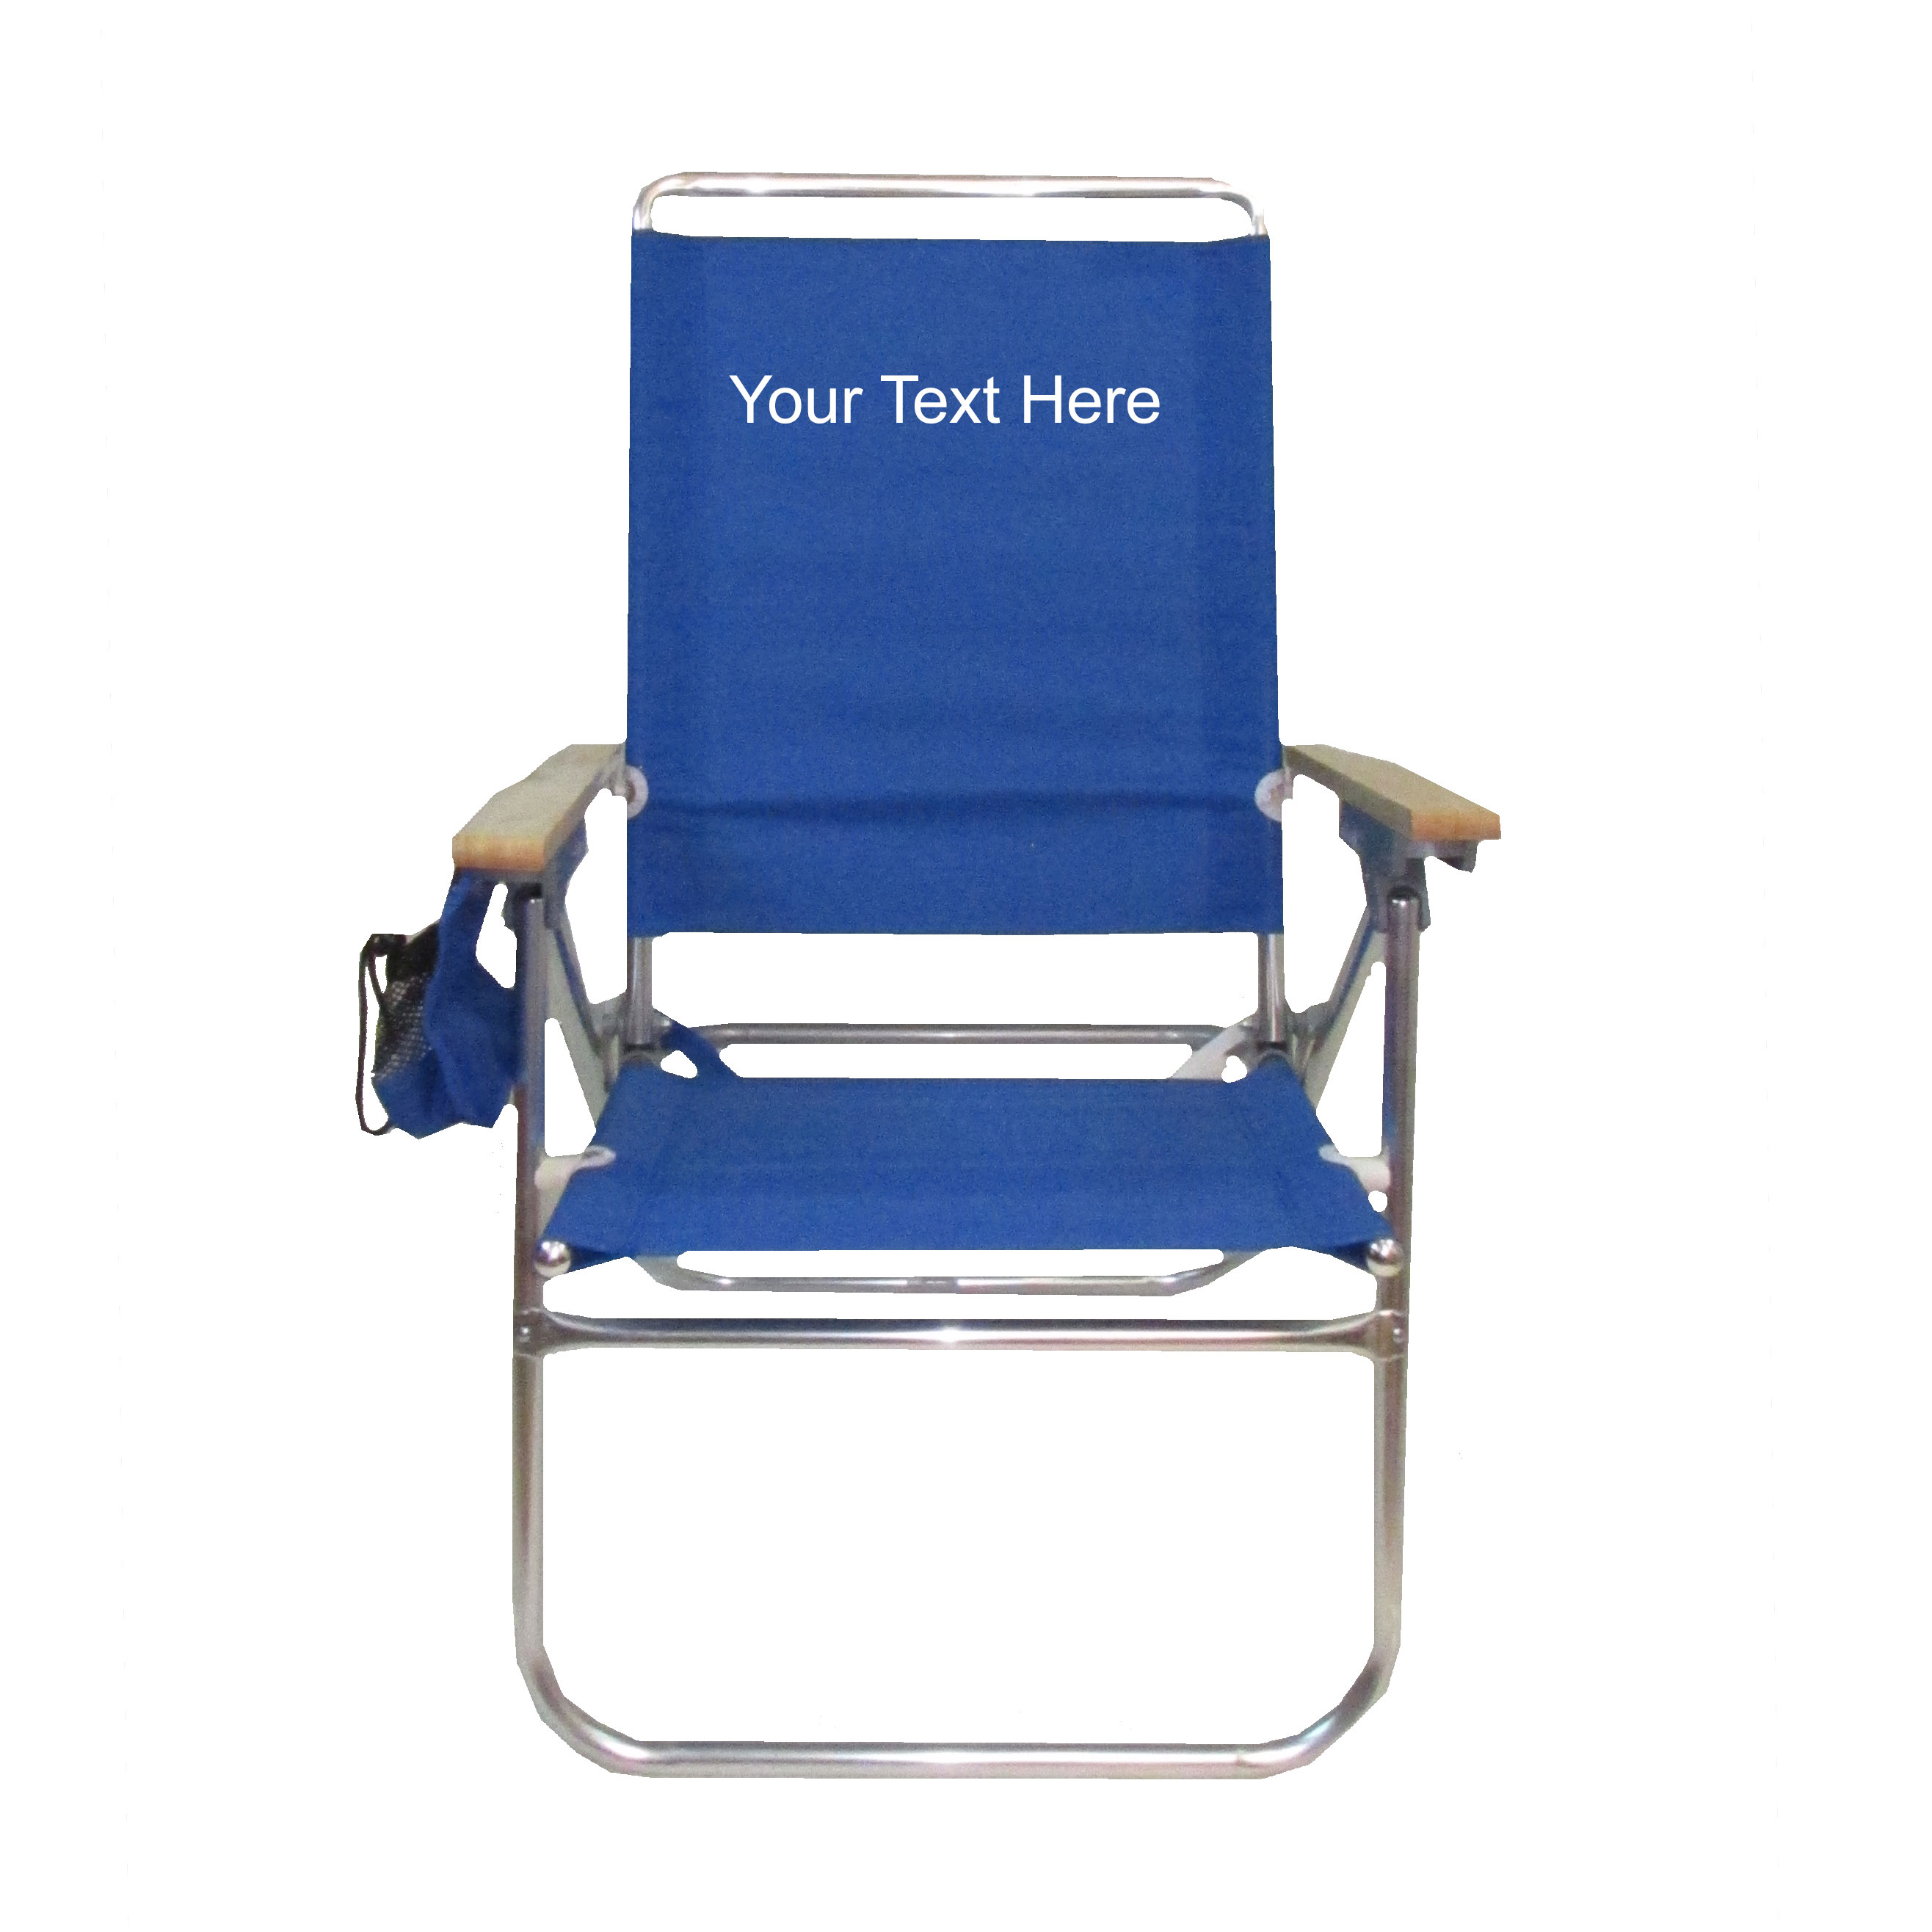 IMPRINTED Personalized Hi-Boy Chair by RIO